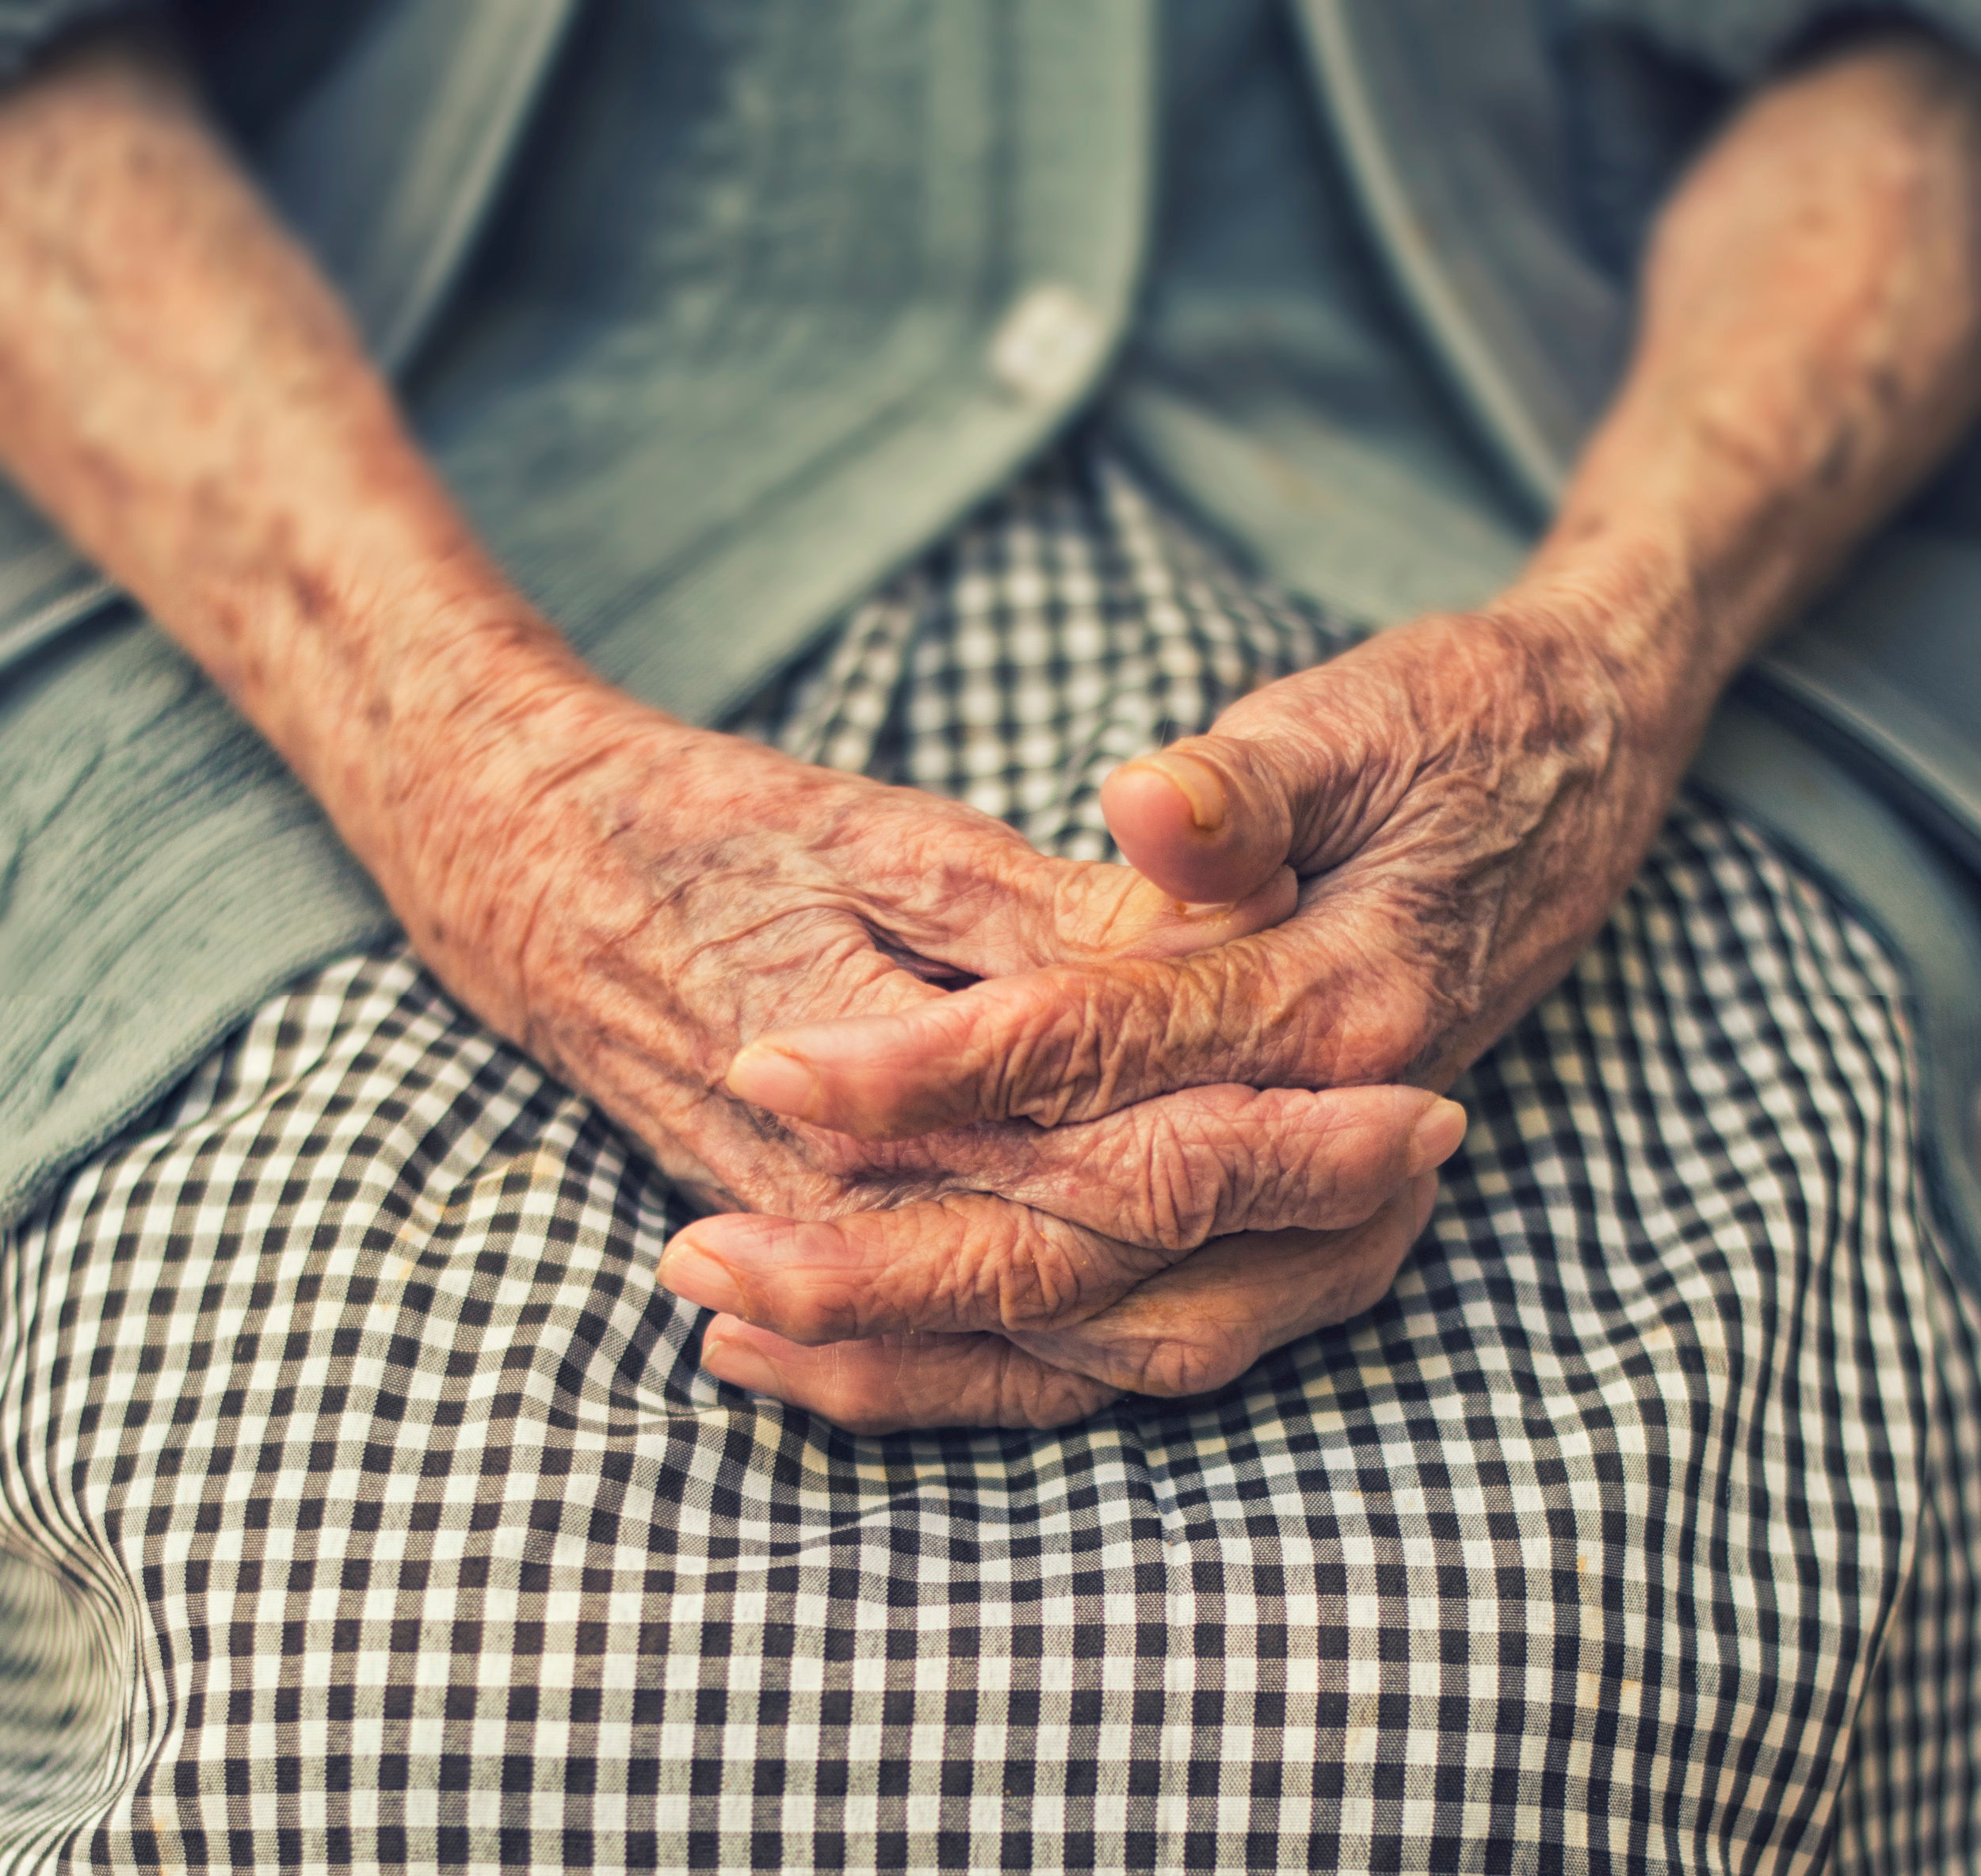 The typical caregiver-to-resident ratio is 1 staff to 3 residents.